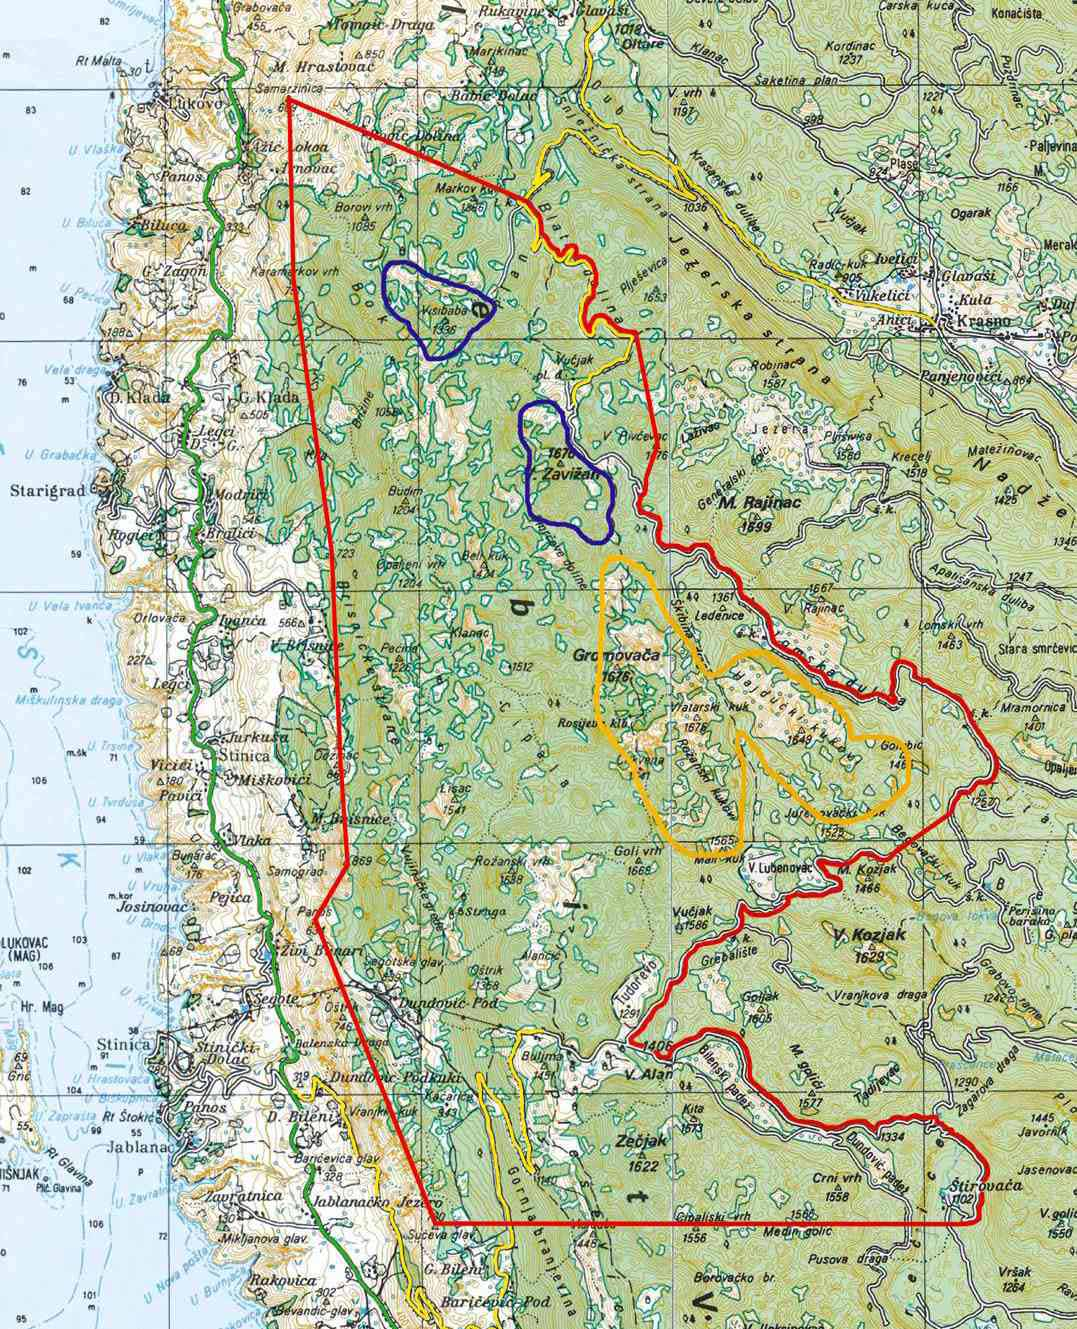 carte velebit parc nationale en croatie